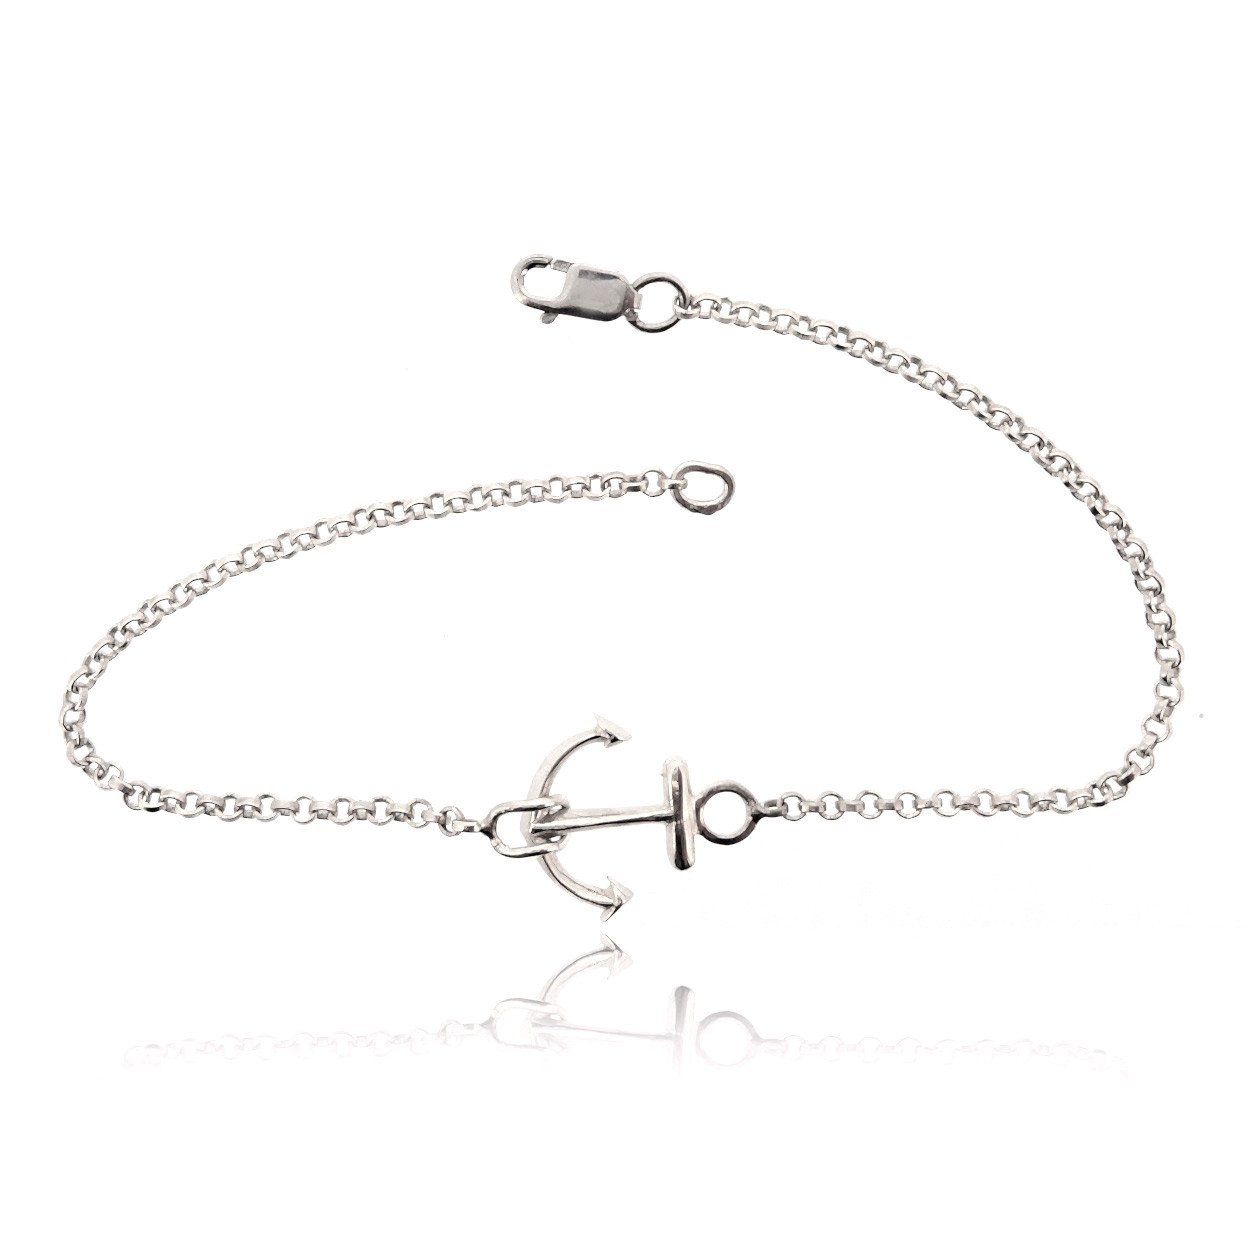 Sovats Anchor Chain Bracelet For Women 925 Sterling Silver Rhodium Plated - Nautical Jewelry Perfect Gift For Him and Her Size 7 East India 304_eb0090_us (7)